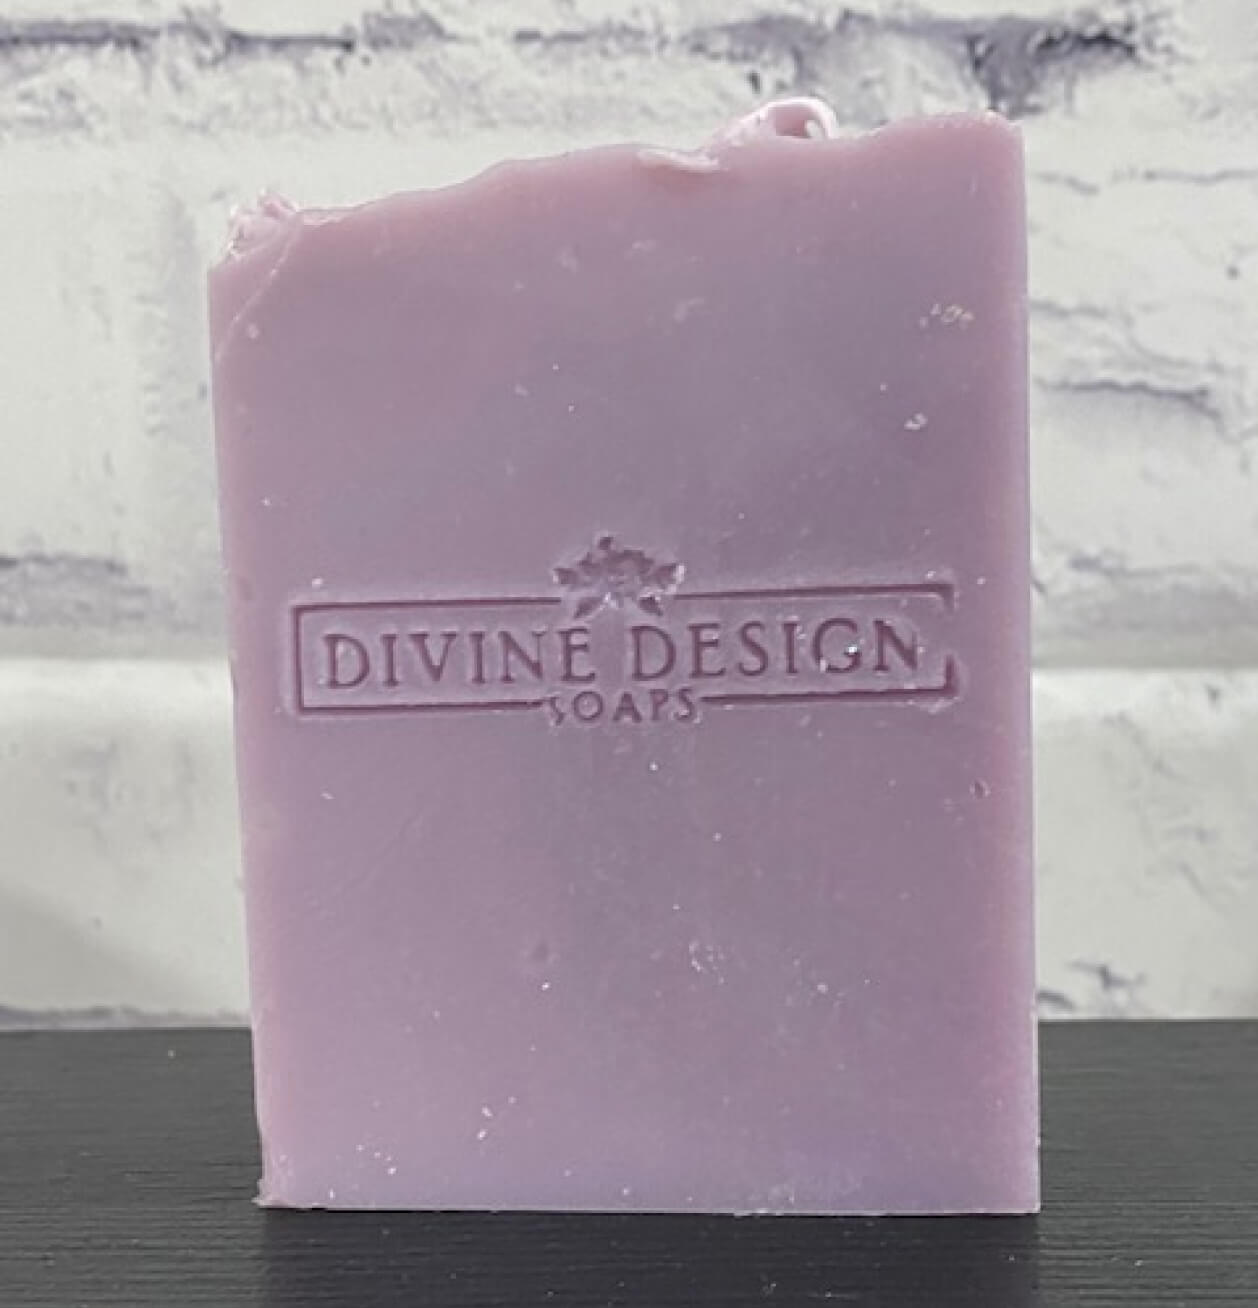 Green and purple colored soaps.